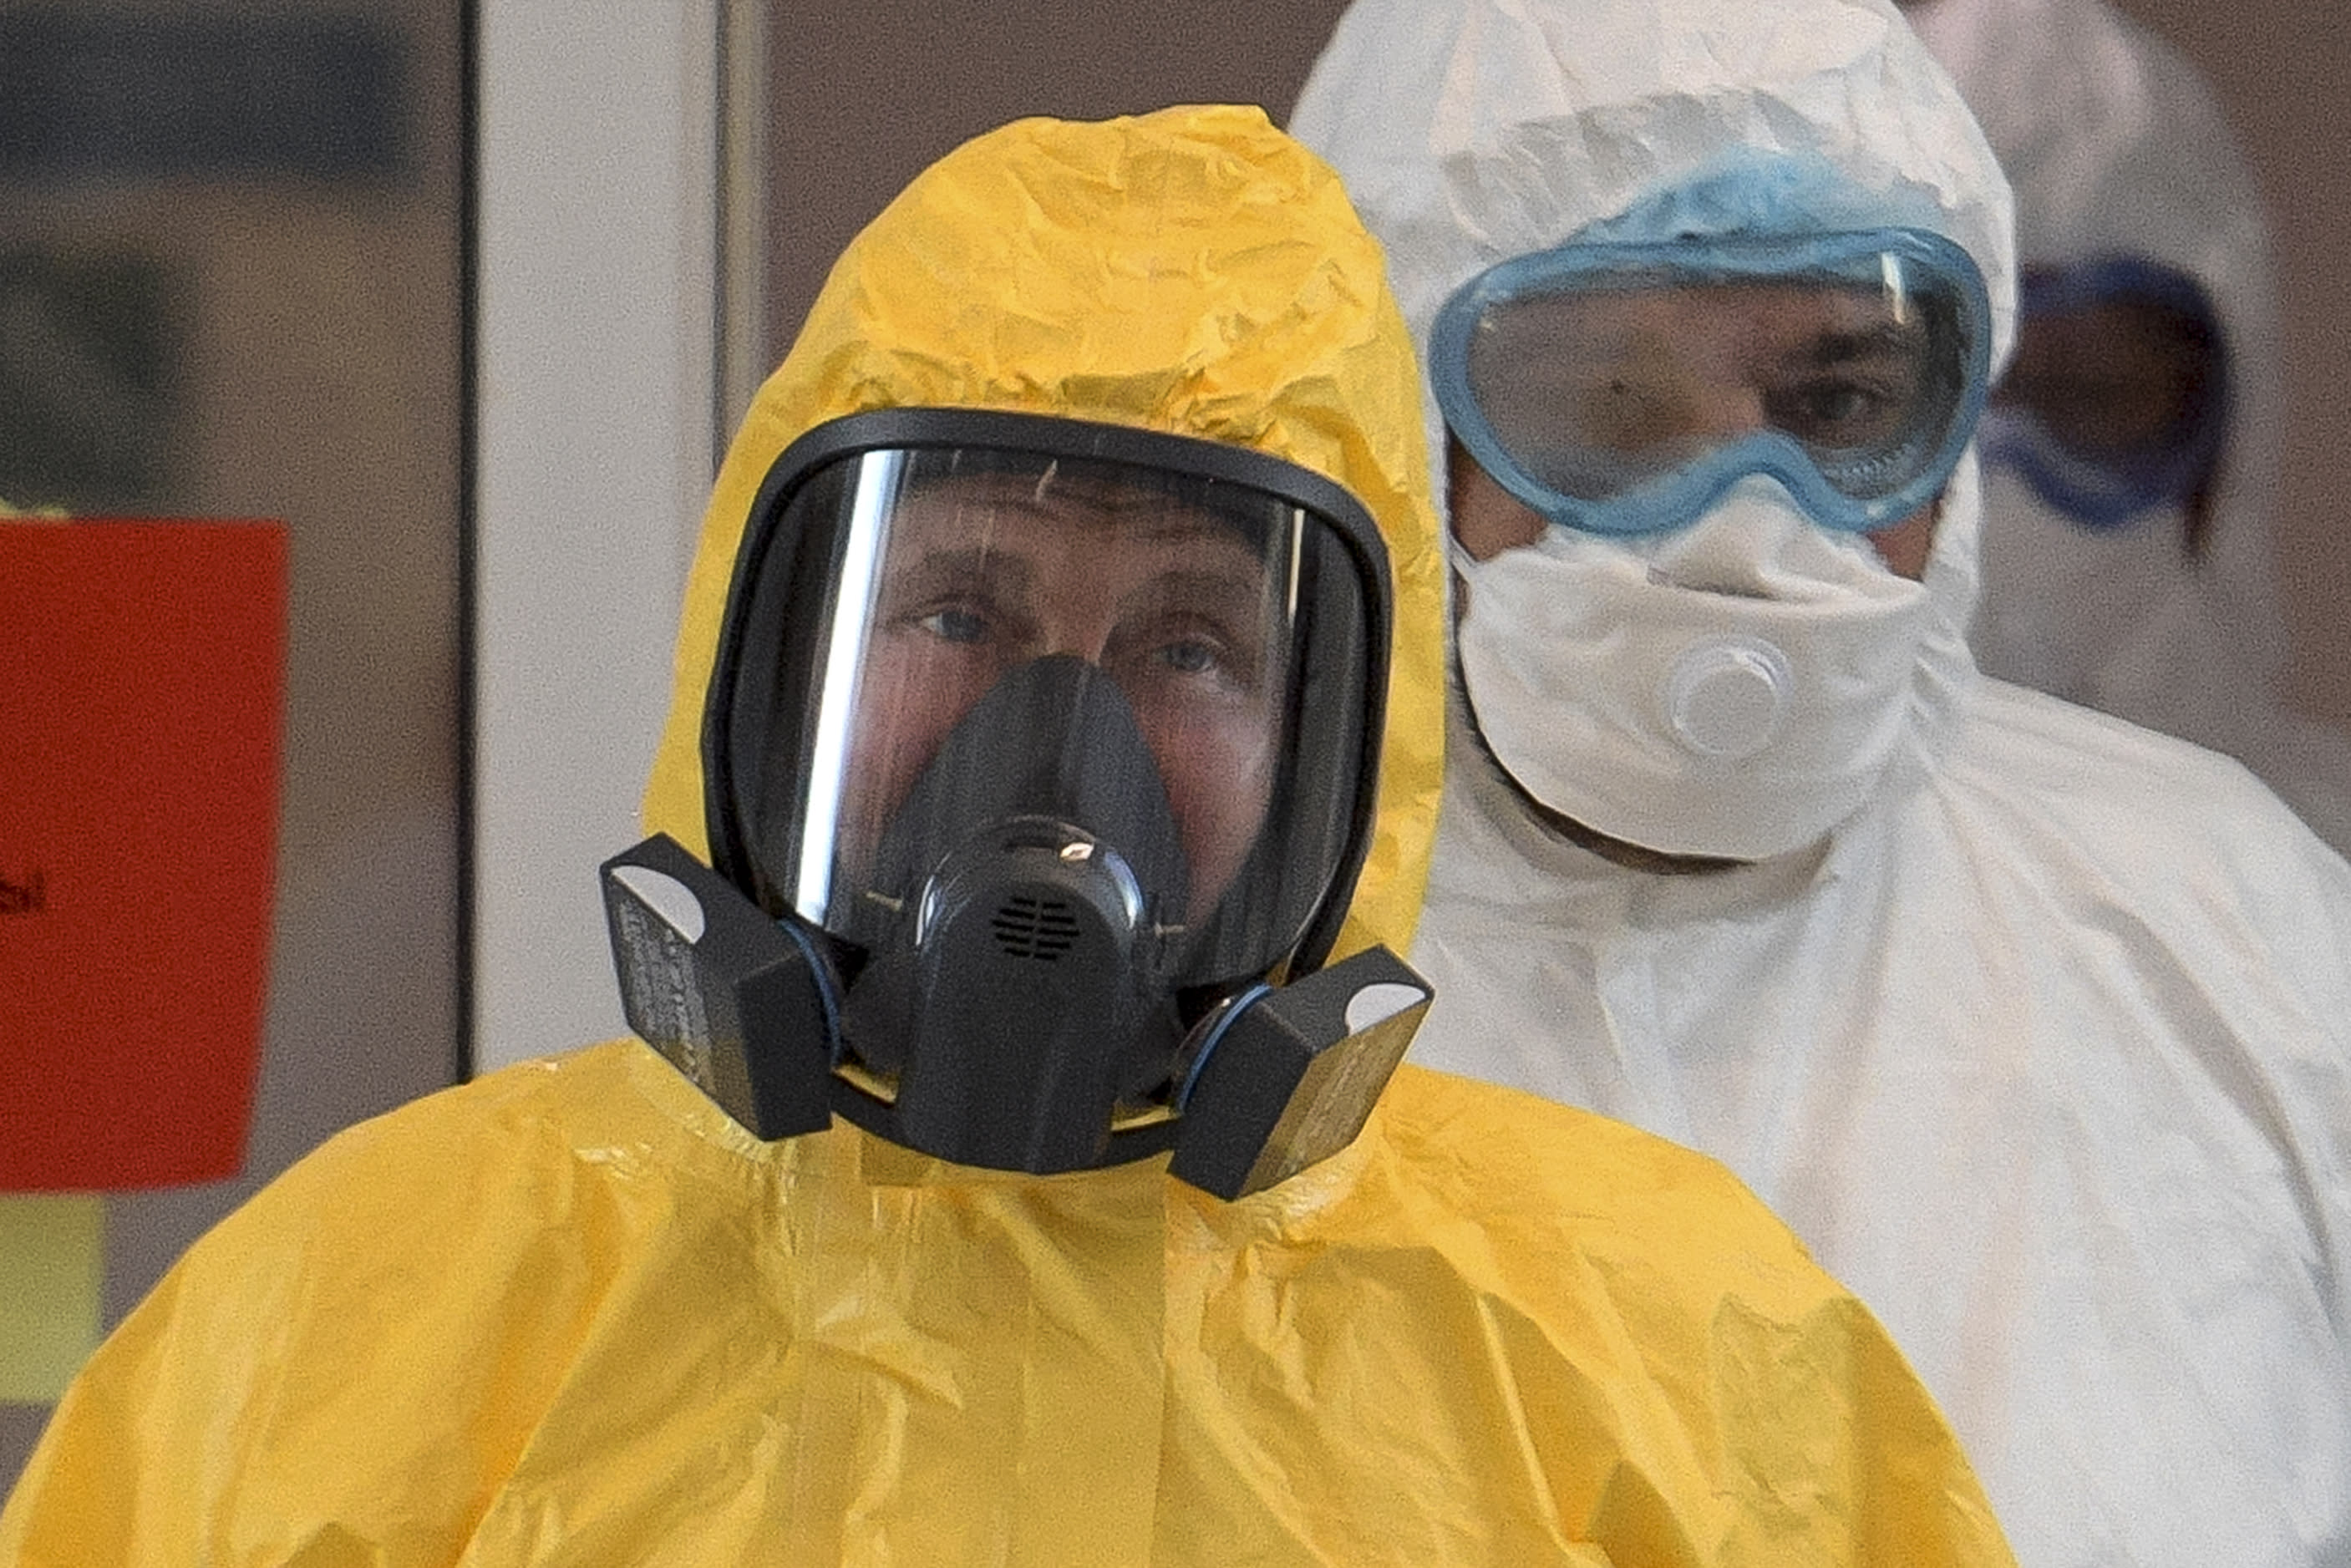 Russian President Vladimir Putin wearing a protective suit enters a hall during his visit to the hospital for coronavirus patients in Kommunarka, outside Moscow, Russia, Tuesday, March 24, 2020. For some people the COVID-19 coronavirus causes mild or moderate symptoms, but for some it can cause severe illness including pneumonia. (Alexei Druzhinin, Sputnik, Kremlin Pool Photo via AP)